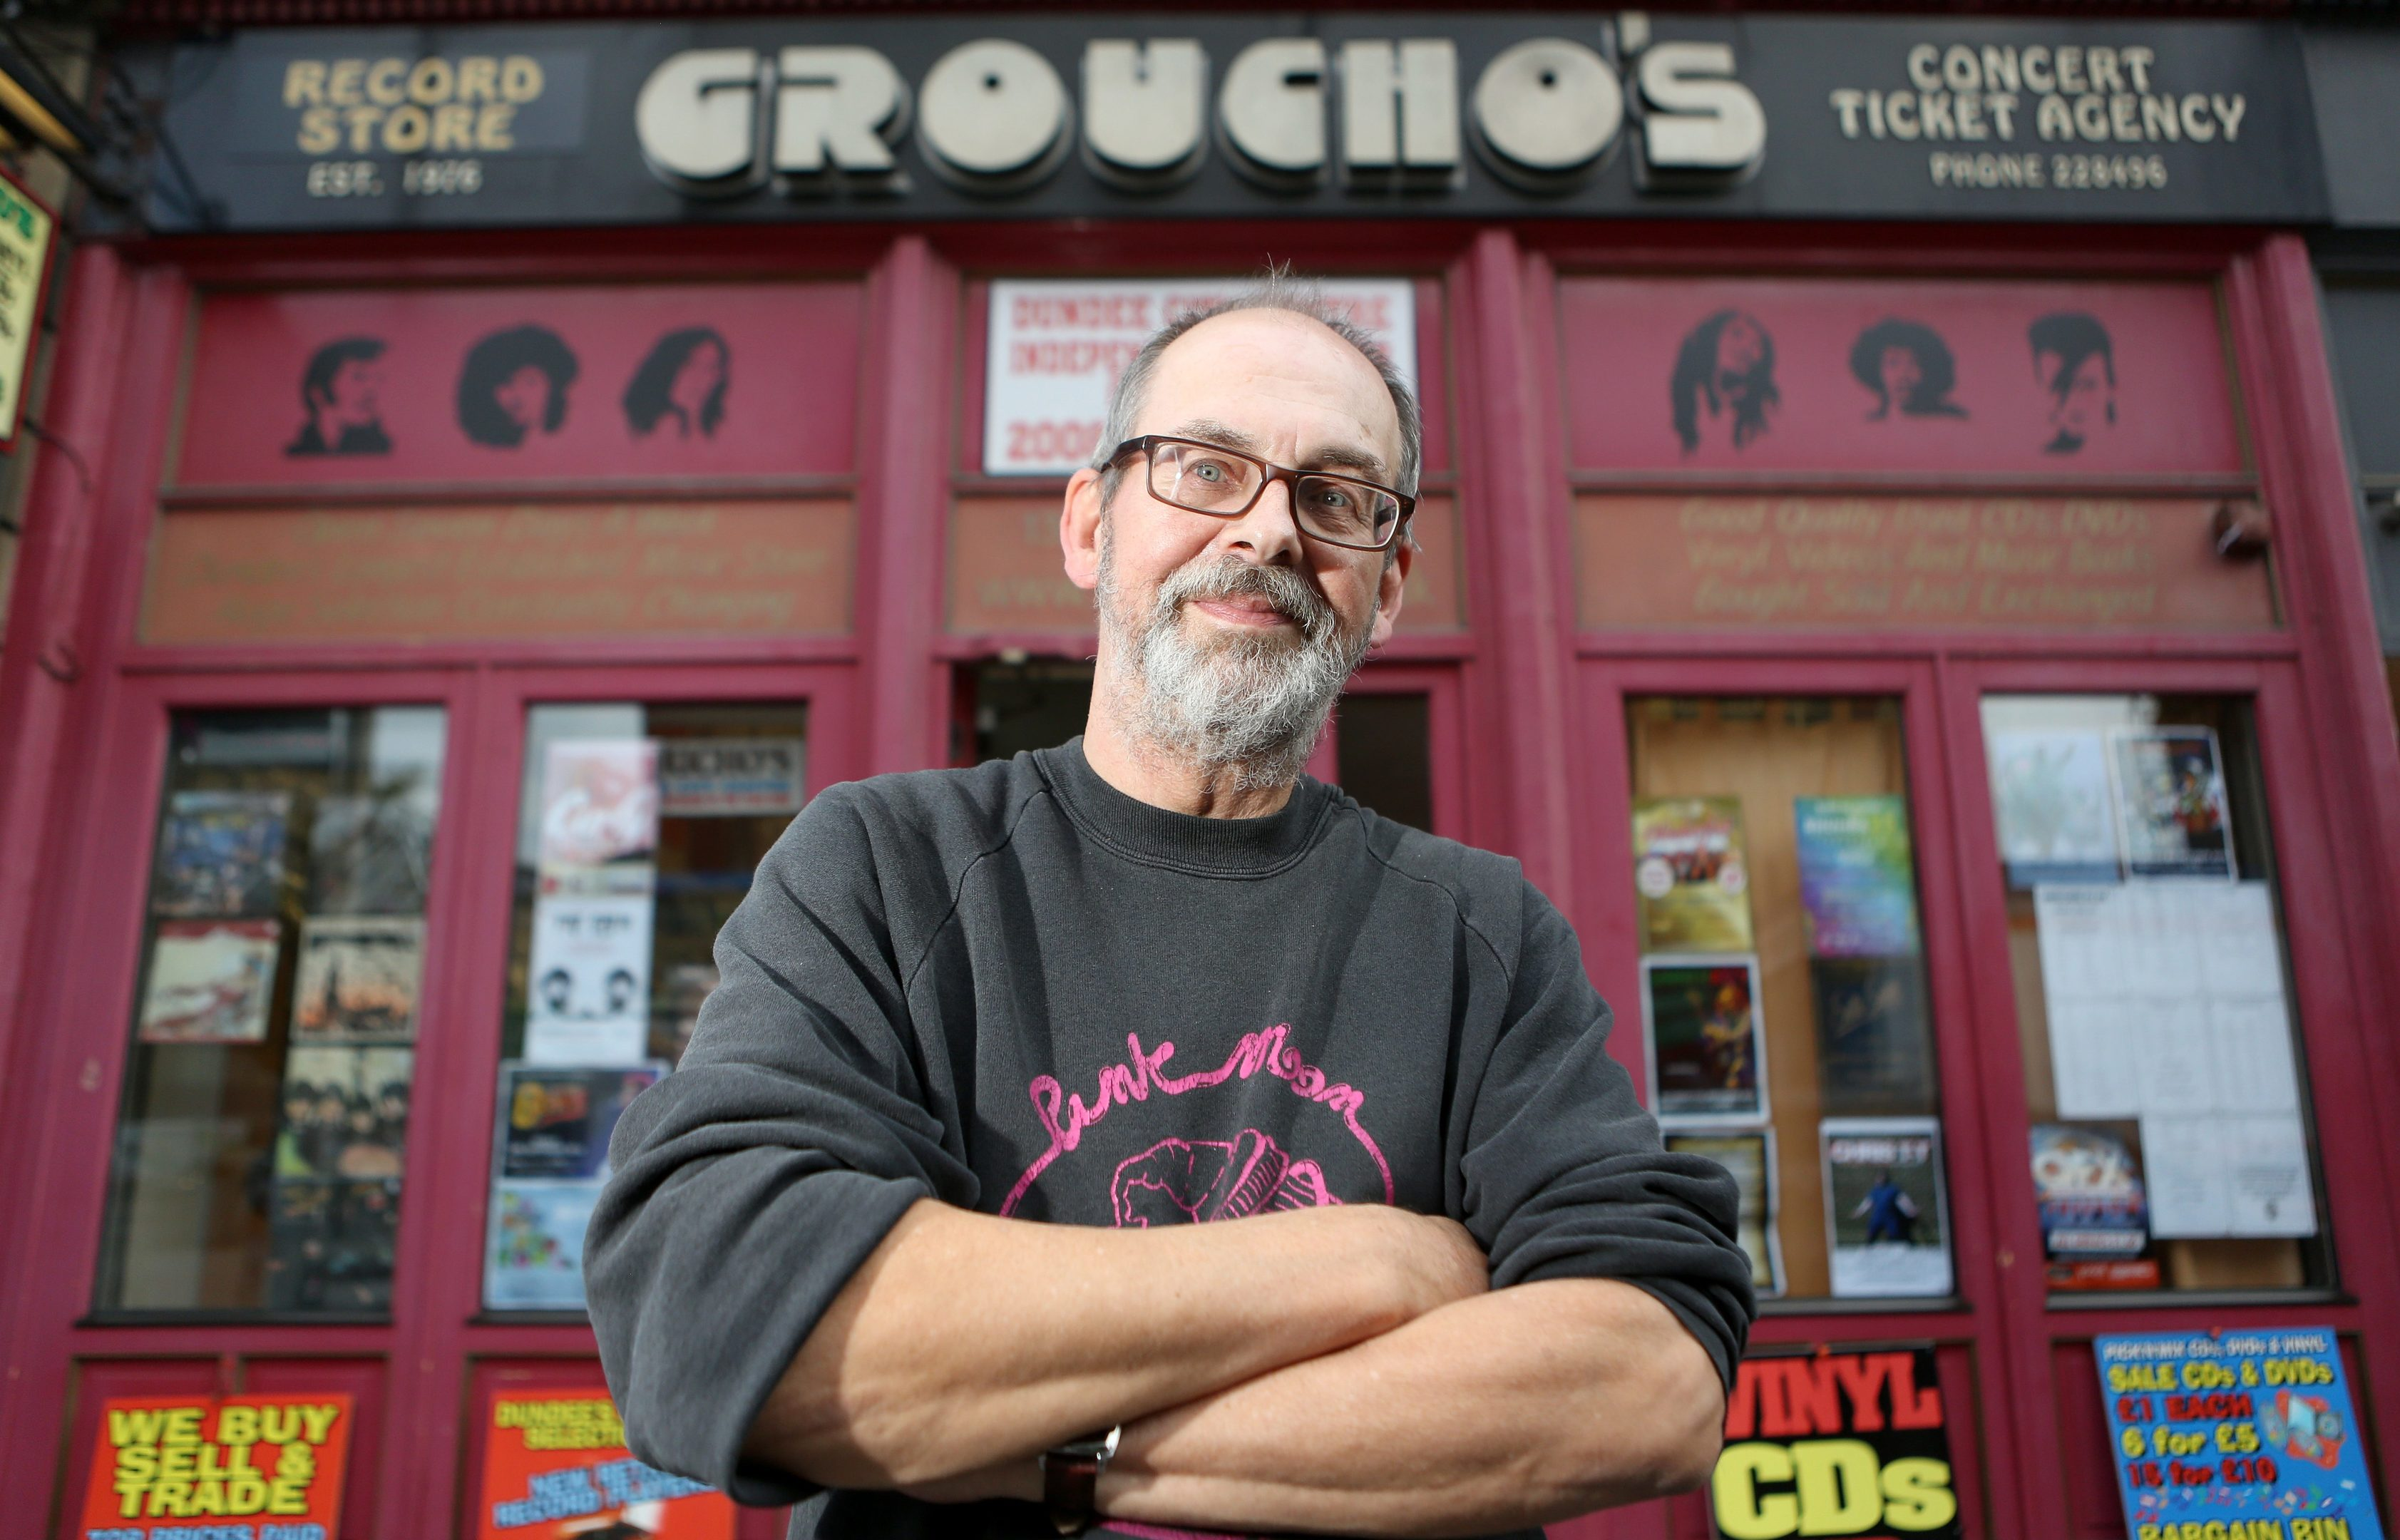 Alastair 'Breeks' Brodie outside Groucho's.